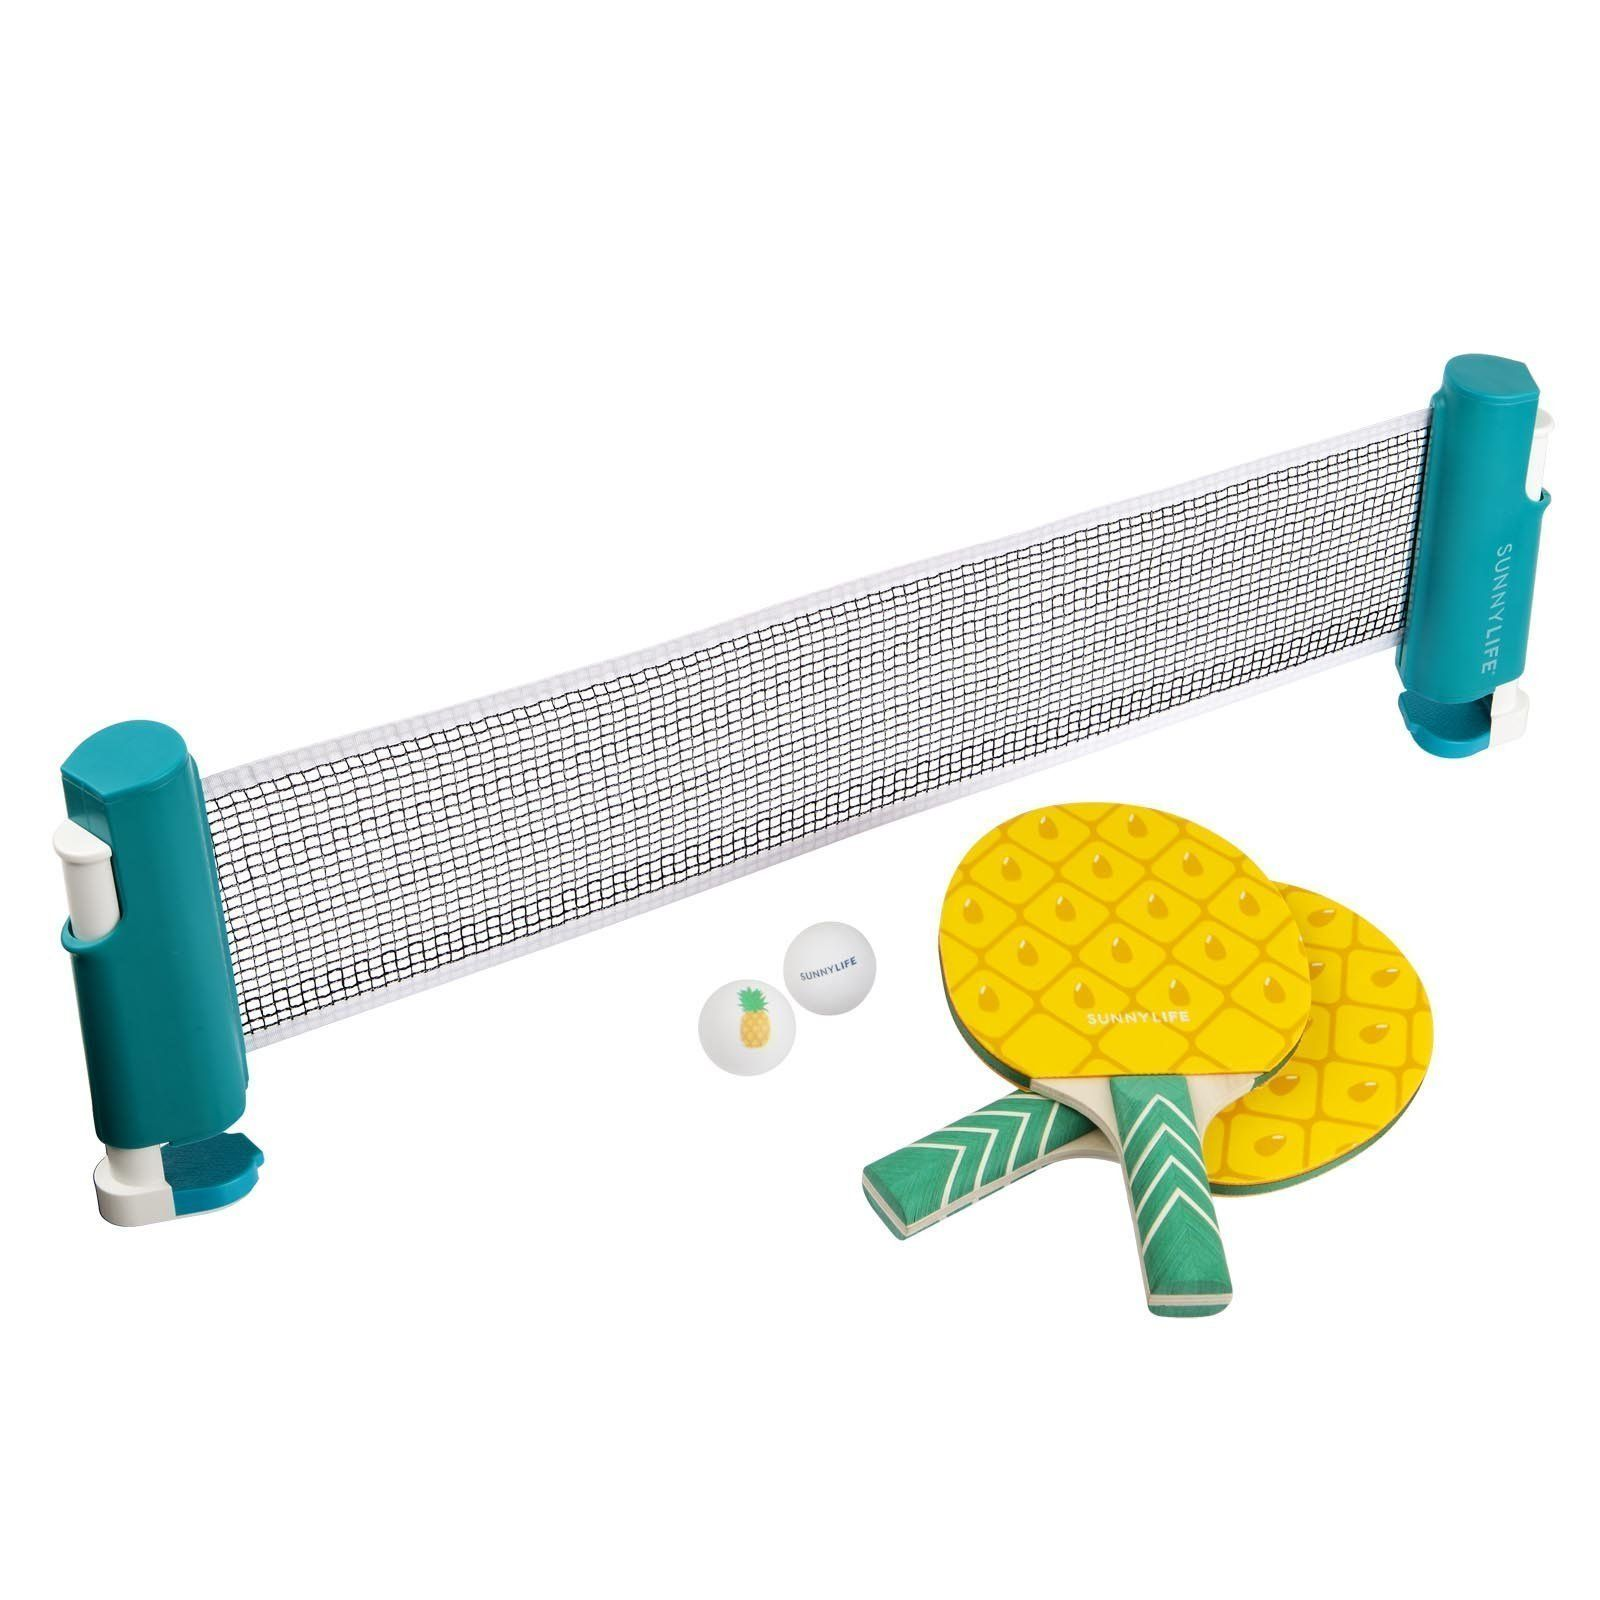 Sunnylife Table Top Tennis Game Ping Pong Set For Kids And Adults Pi Timely Buys Sunnylife Ping Pong Table Tennis Game